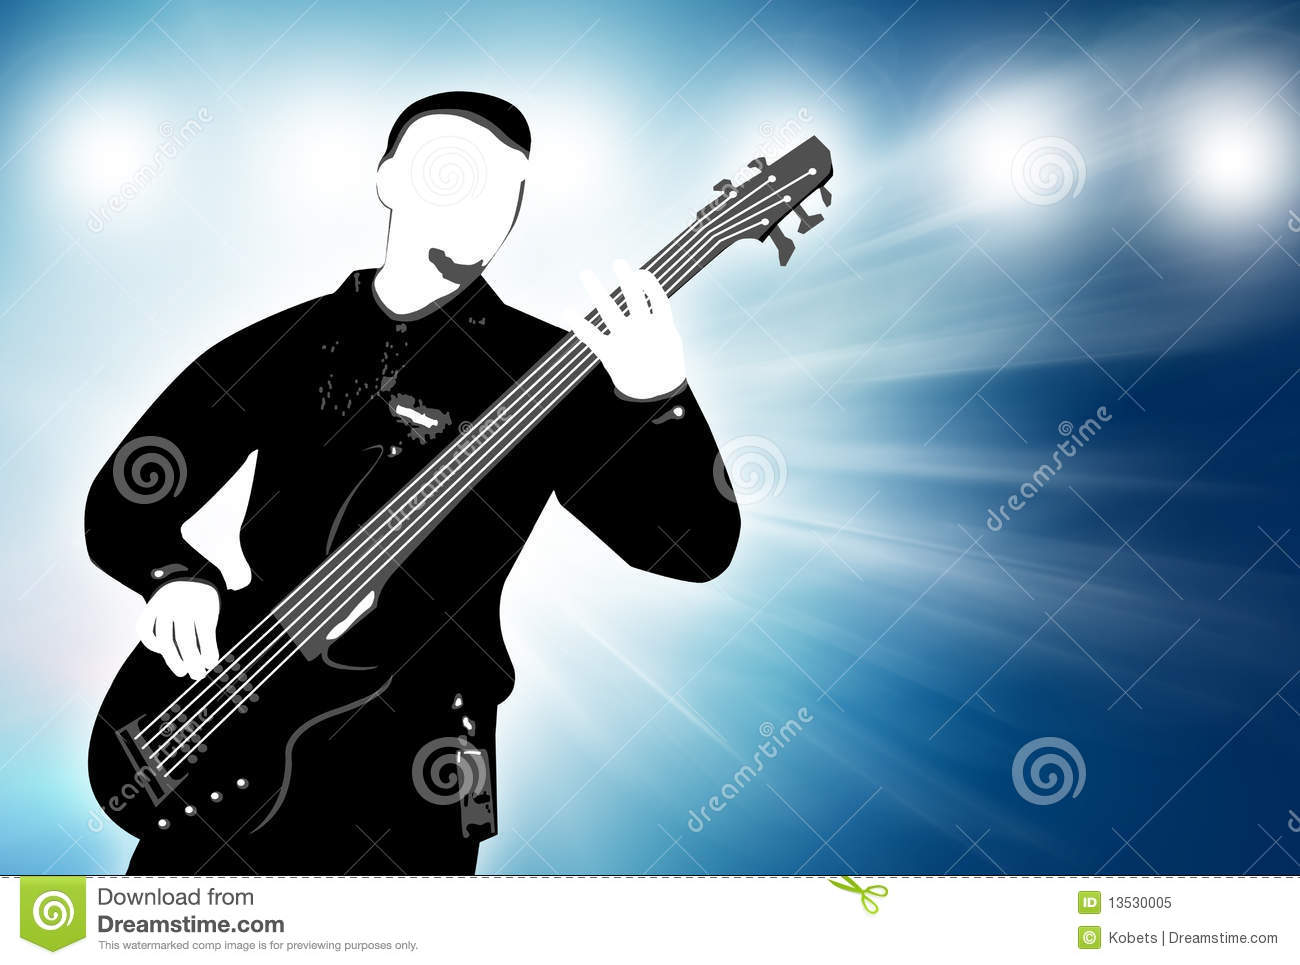 Guitarist Silhouette On Abstract Background Royalty Free ...